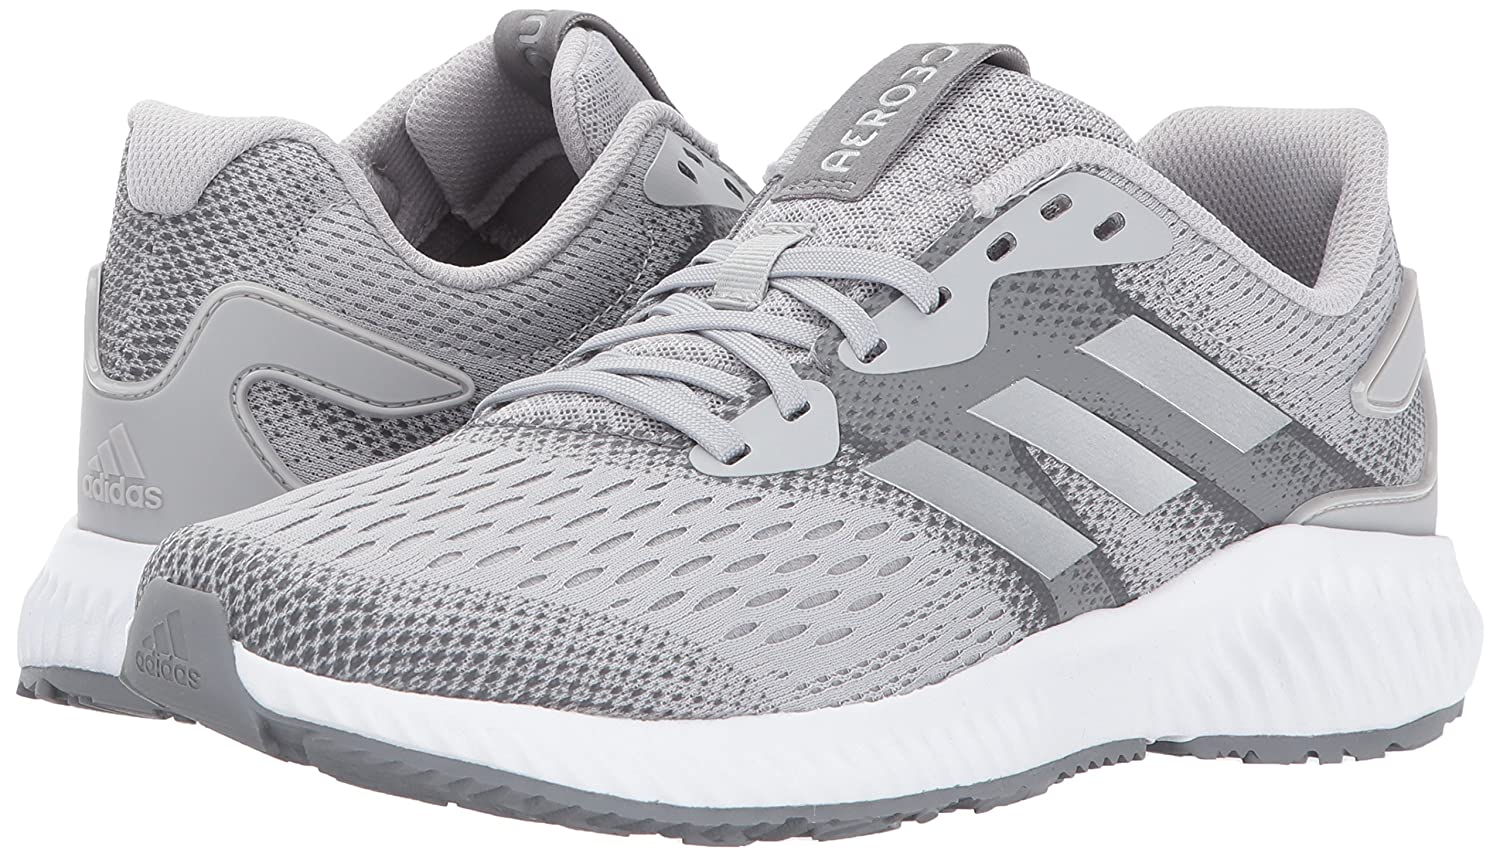 adidas Women's Aerobounce W B(M) Running Shoe B01MSQHLWL 6.5 B(M) W US|Grey Two/Metallic Silver/Grey Five 28606a